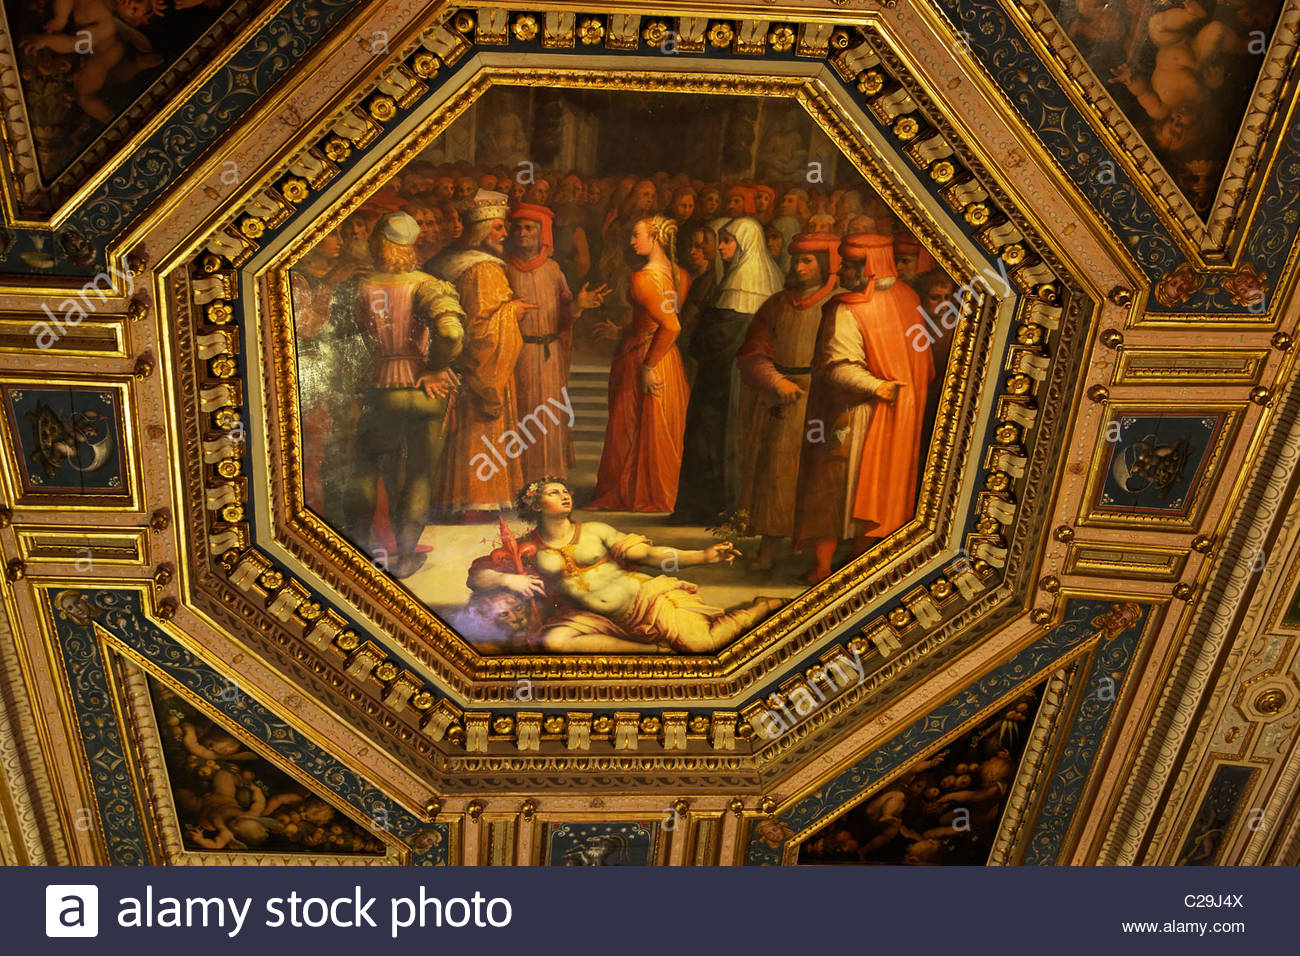 Ceiling panel in the Palazzo Vecchio laminated with pure gold. - Stock Image